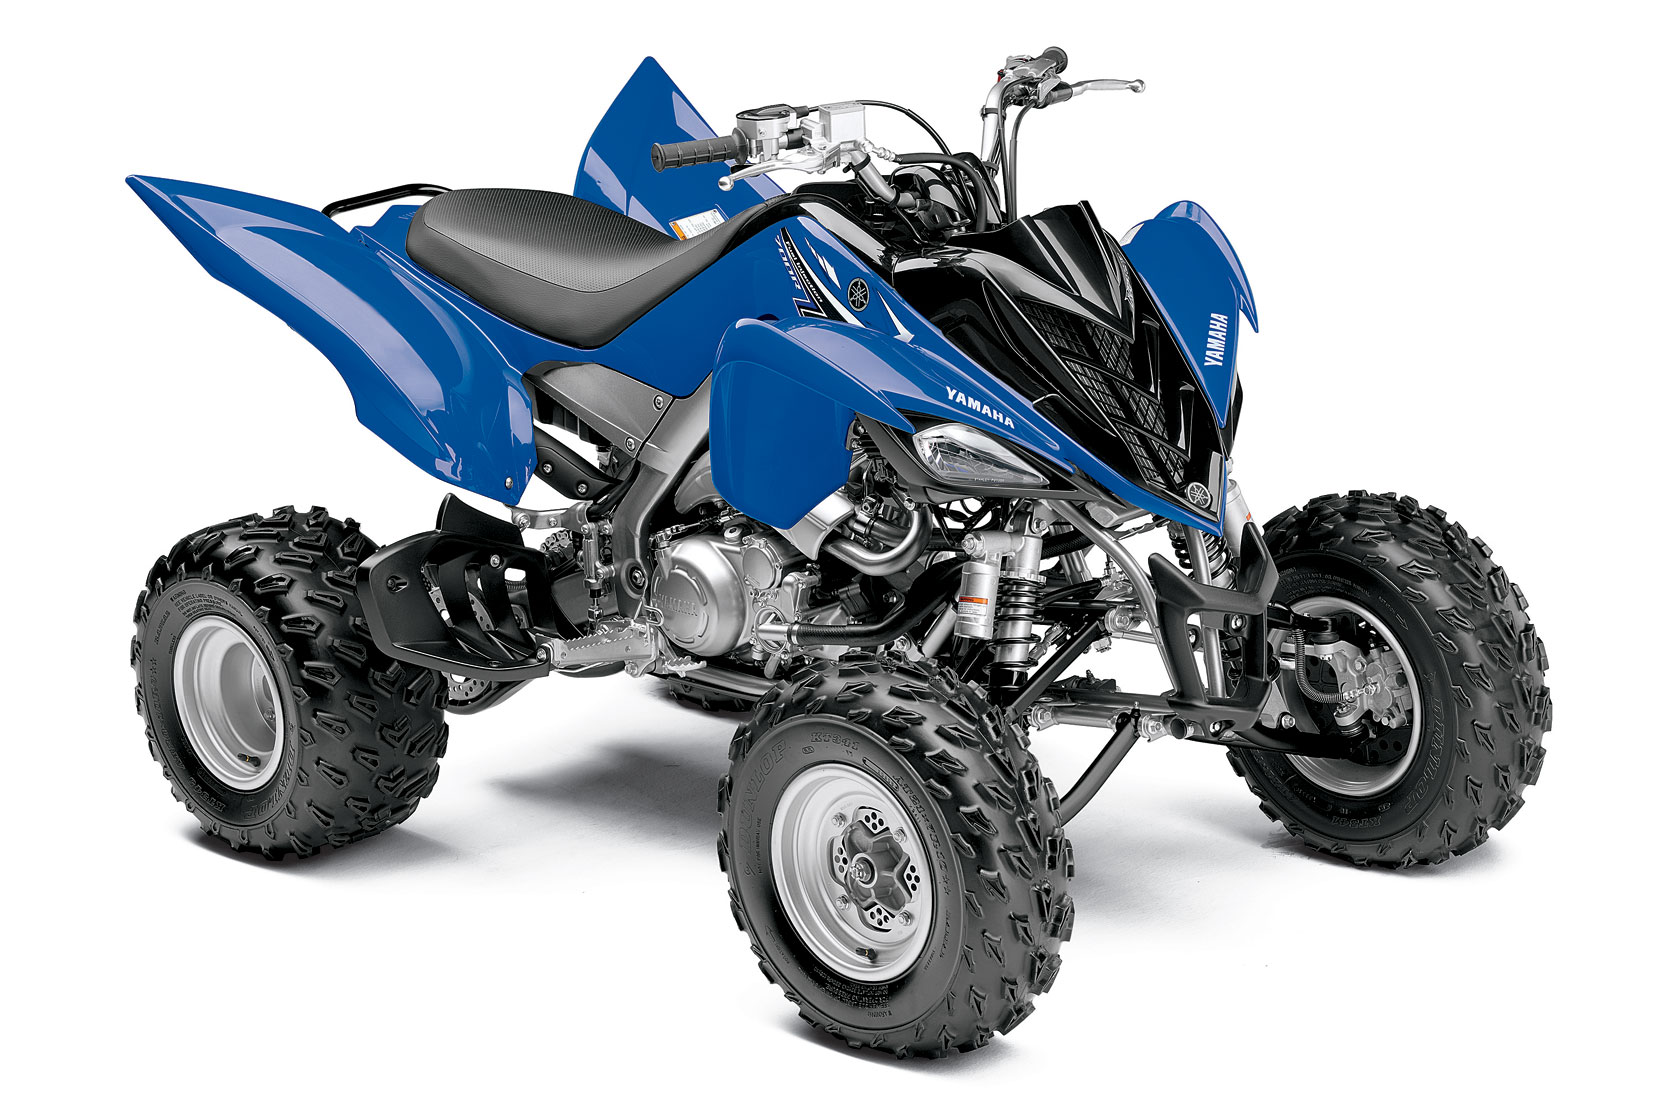 yamaha raptor 700r specs 2010 2011 autoevolution. Black Bedroom Furniture Sets. Home Design Ideas